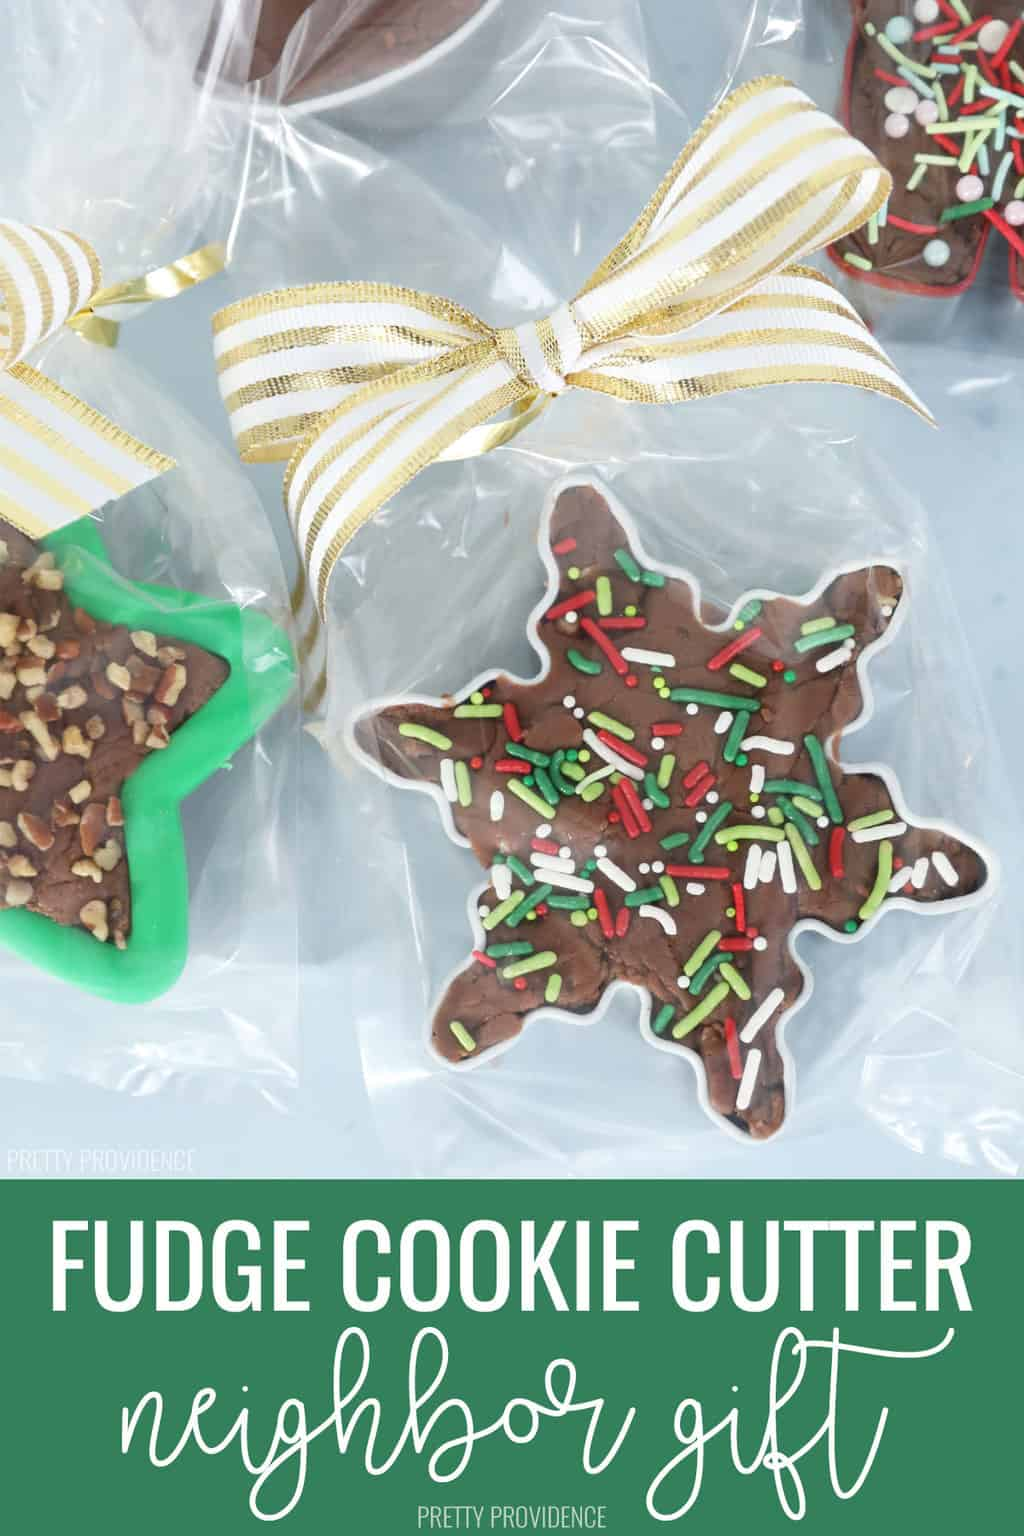 Fudge filled cookie cutters, a perfect holiday gift!